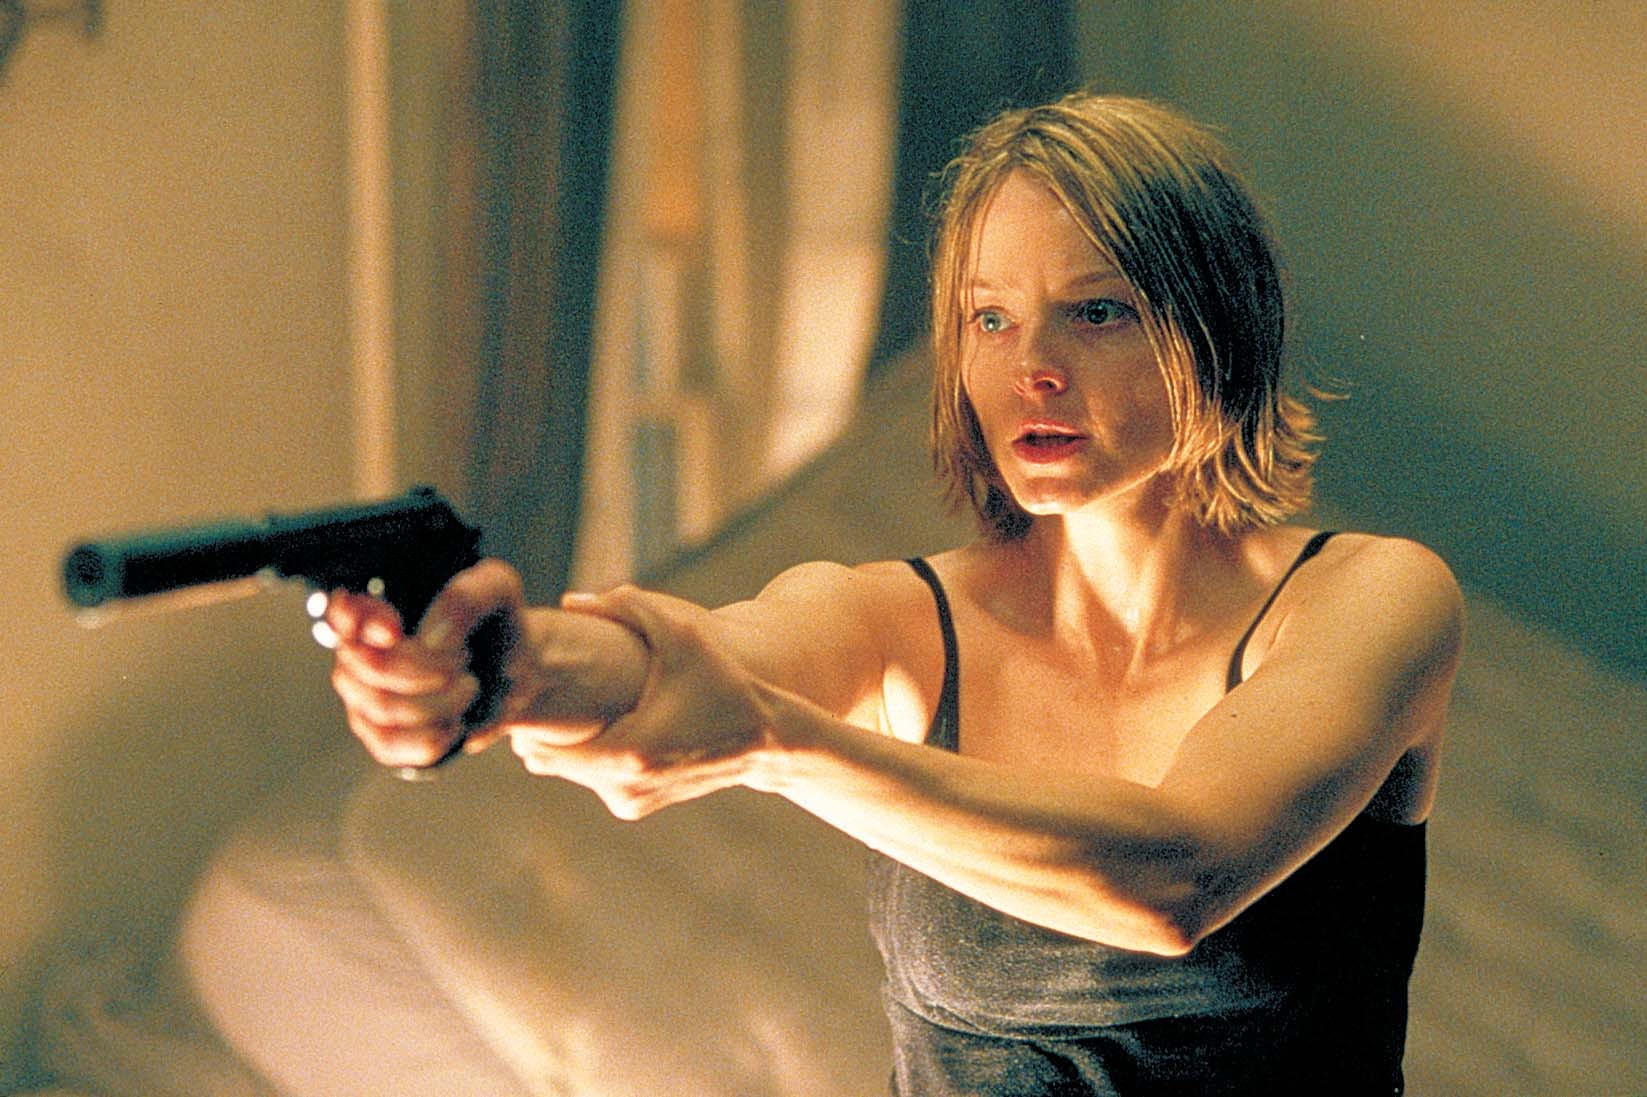 Jodie Foster in Panic Room (2002)